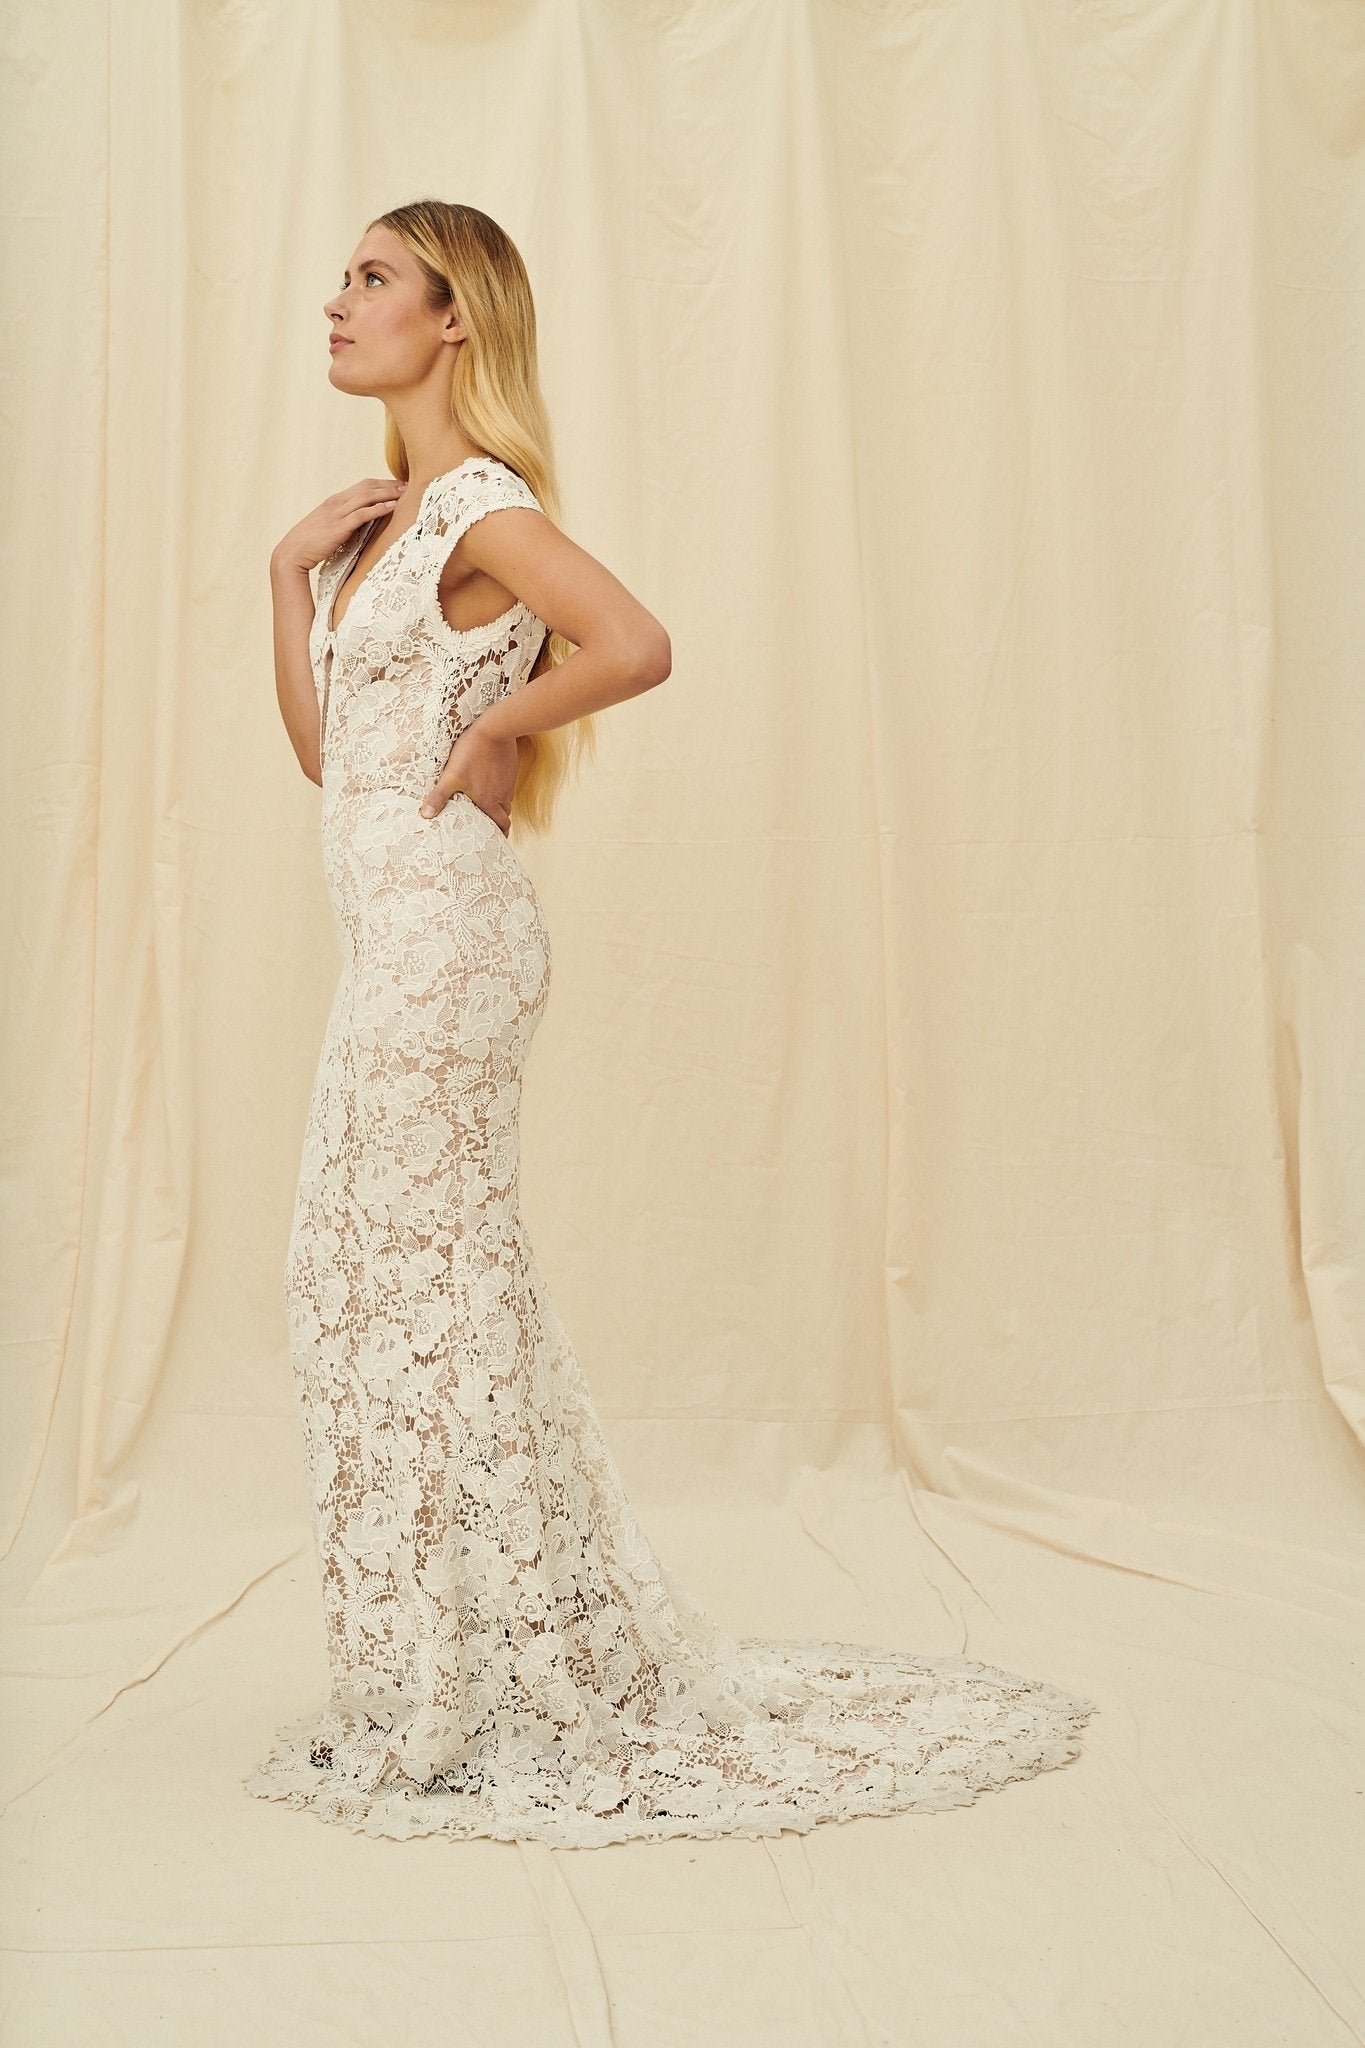 A full-lace gown with mocha-coloured lining, cap sleeves, and a wide open back